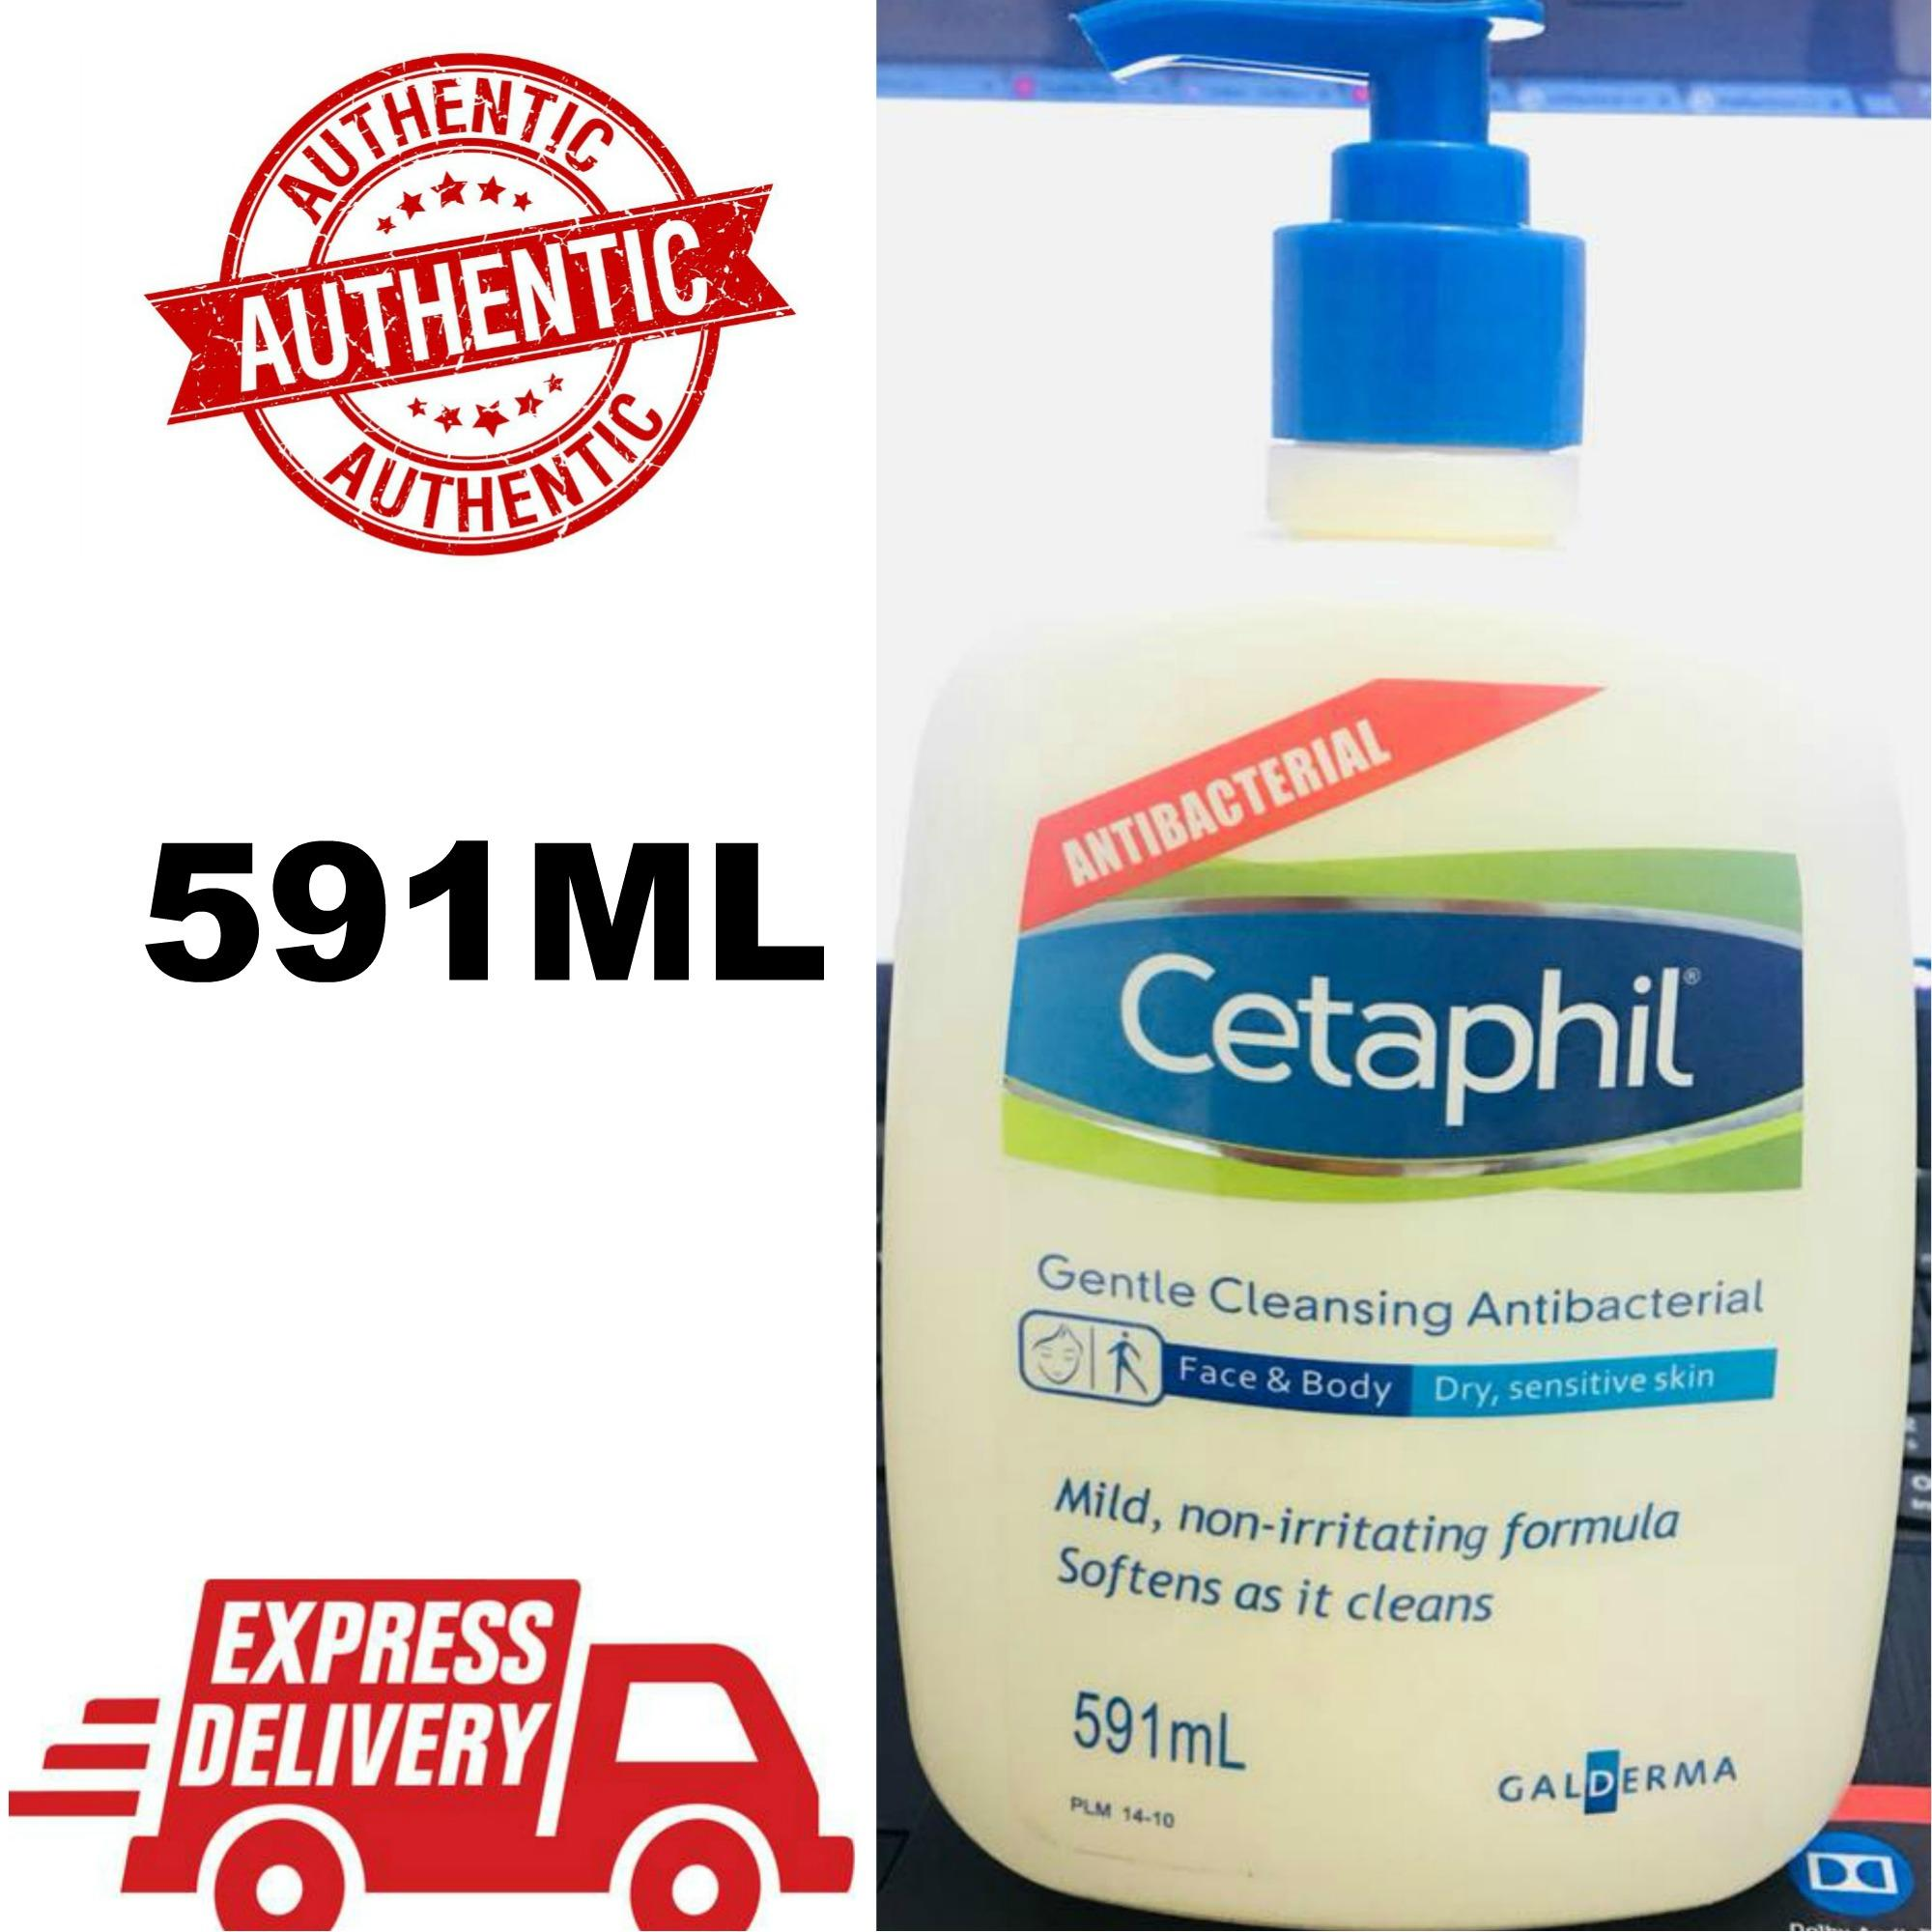 Cetaphil Gentle Skin Cleanser 500 Ml Latest Products Up To 70 Off Lazada Philippines Antibacterial Cleanserauthentic 591ml